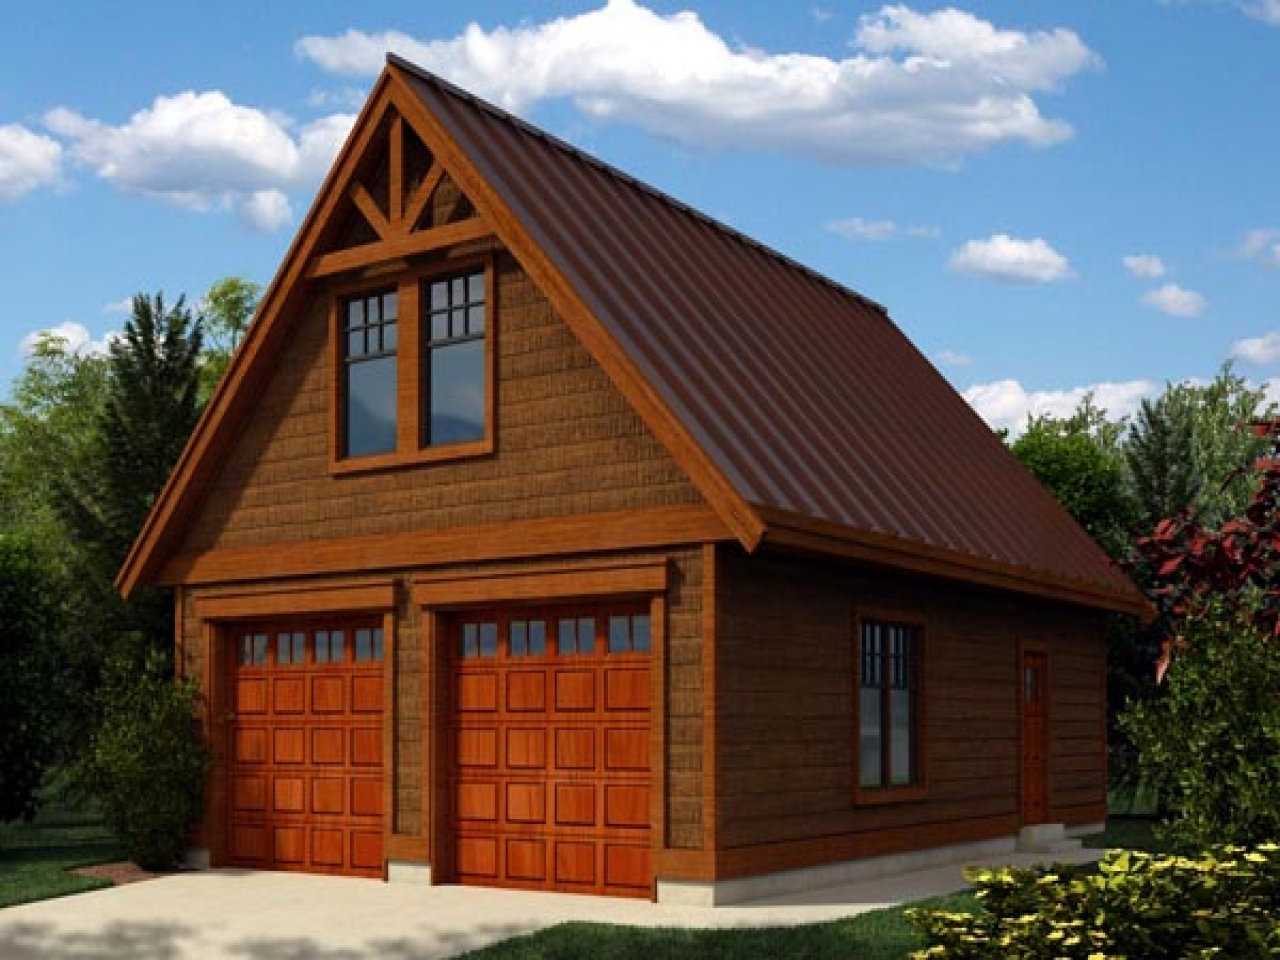 Garage plans with loft contemporary garage plans with loft for Contemporary log home plans